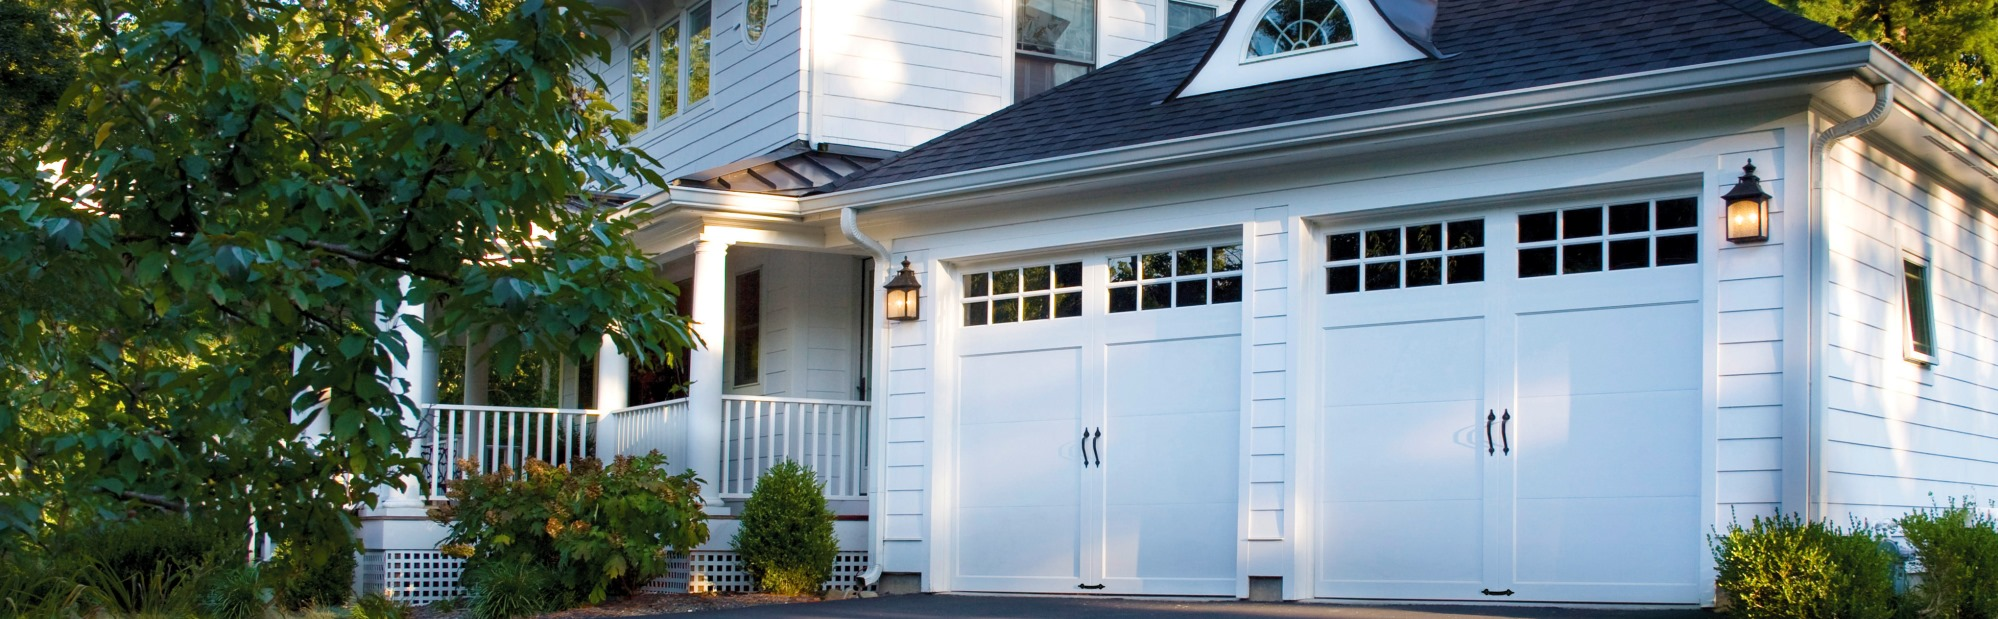 Garage Doors Toledo Ohio Quality Overhead Door